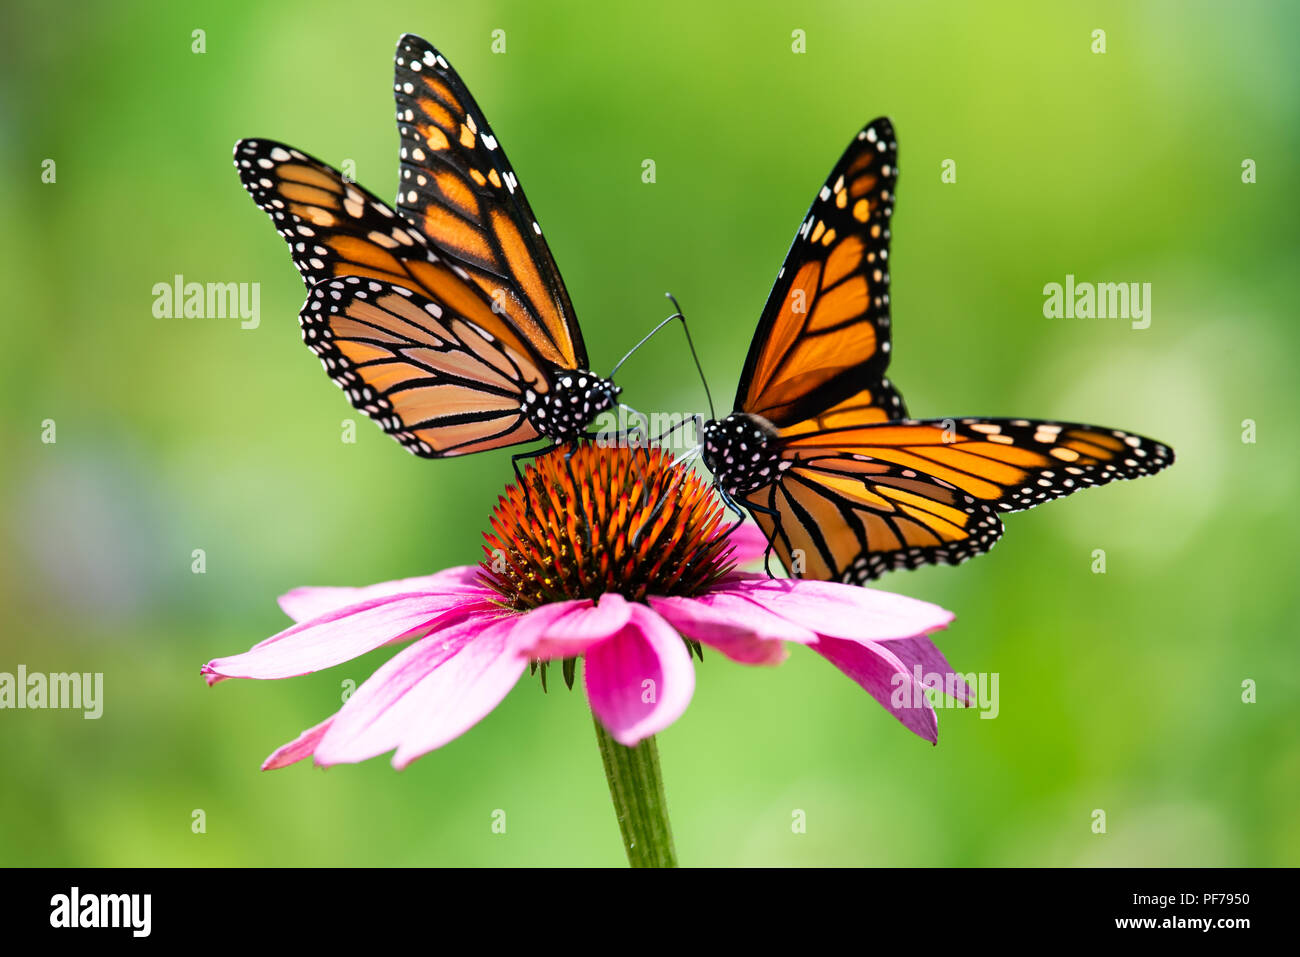 two-colorful-monarch-butterflies-danaus-plexippus-feeding-on-pink-cone-flower-in-the-garden-in-speculator-new-york-ny-usa-PF7950.jpg